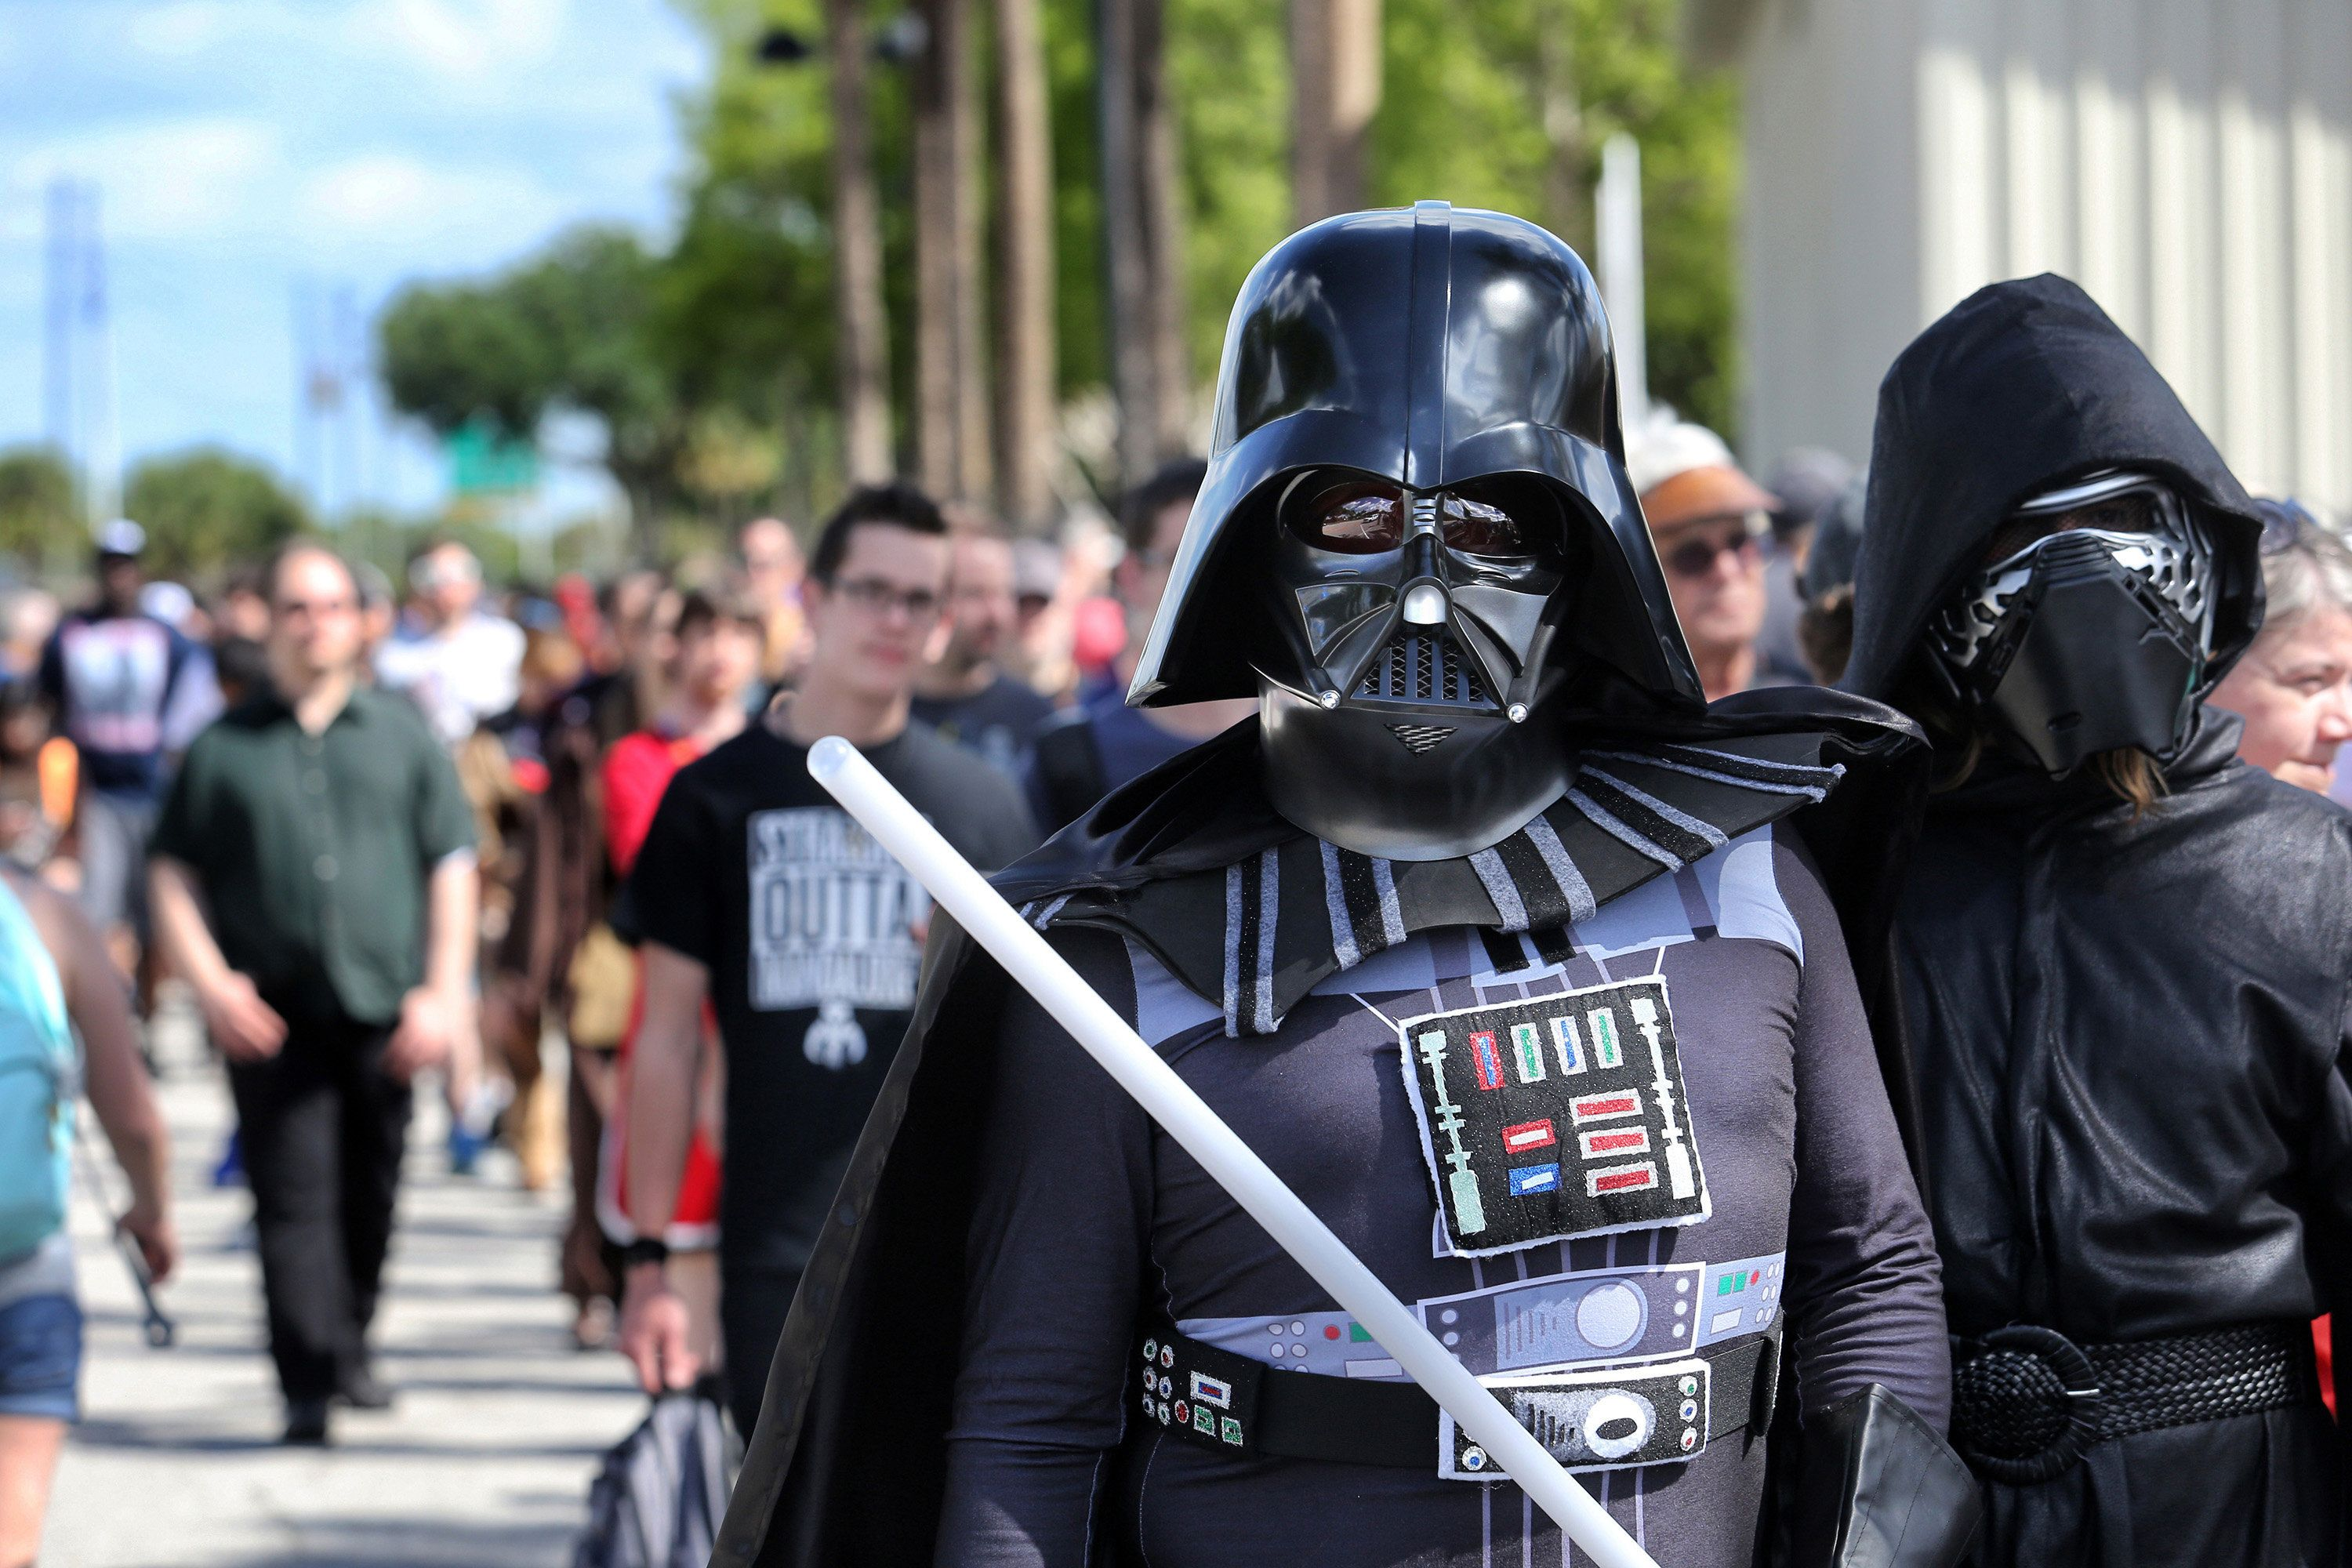 Costumed fans of the Star Wars franchise wait in a massive line outside the Orange County Center Thursday, April 13, 2017 in Orlando, Fla., to attend the 2017 Star Wars Celebration, marking the 40th anniversary of the original 1977 Star Wars film. Thousands of fans waited for hours in the line, estimated to be more than a mile long. (Joe Burbank/Orlando Sentinel/TNS via Getty Images)